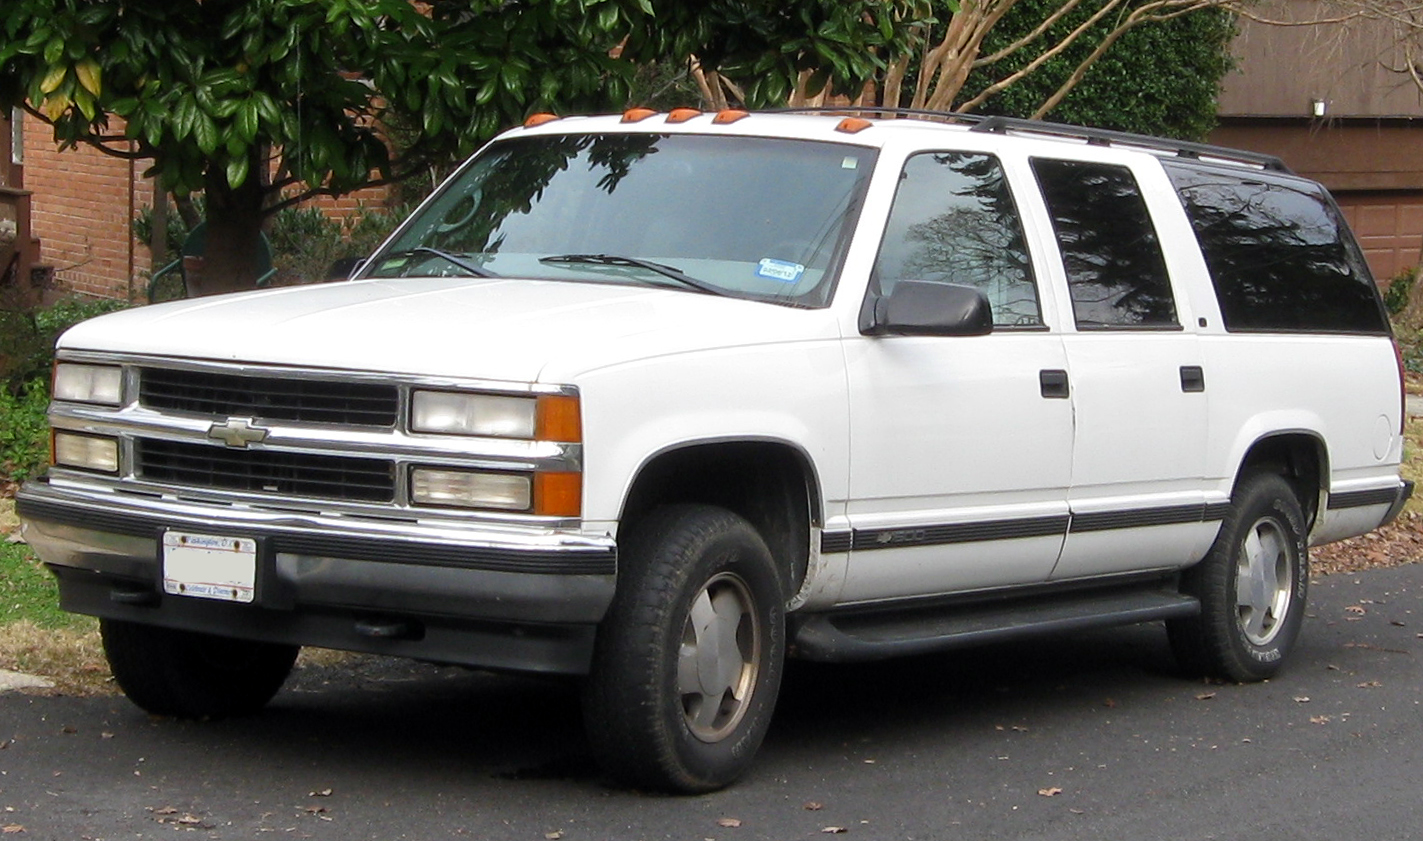 Cars chevrolet silverado gmt800 heavy duty 1998